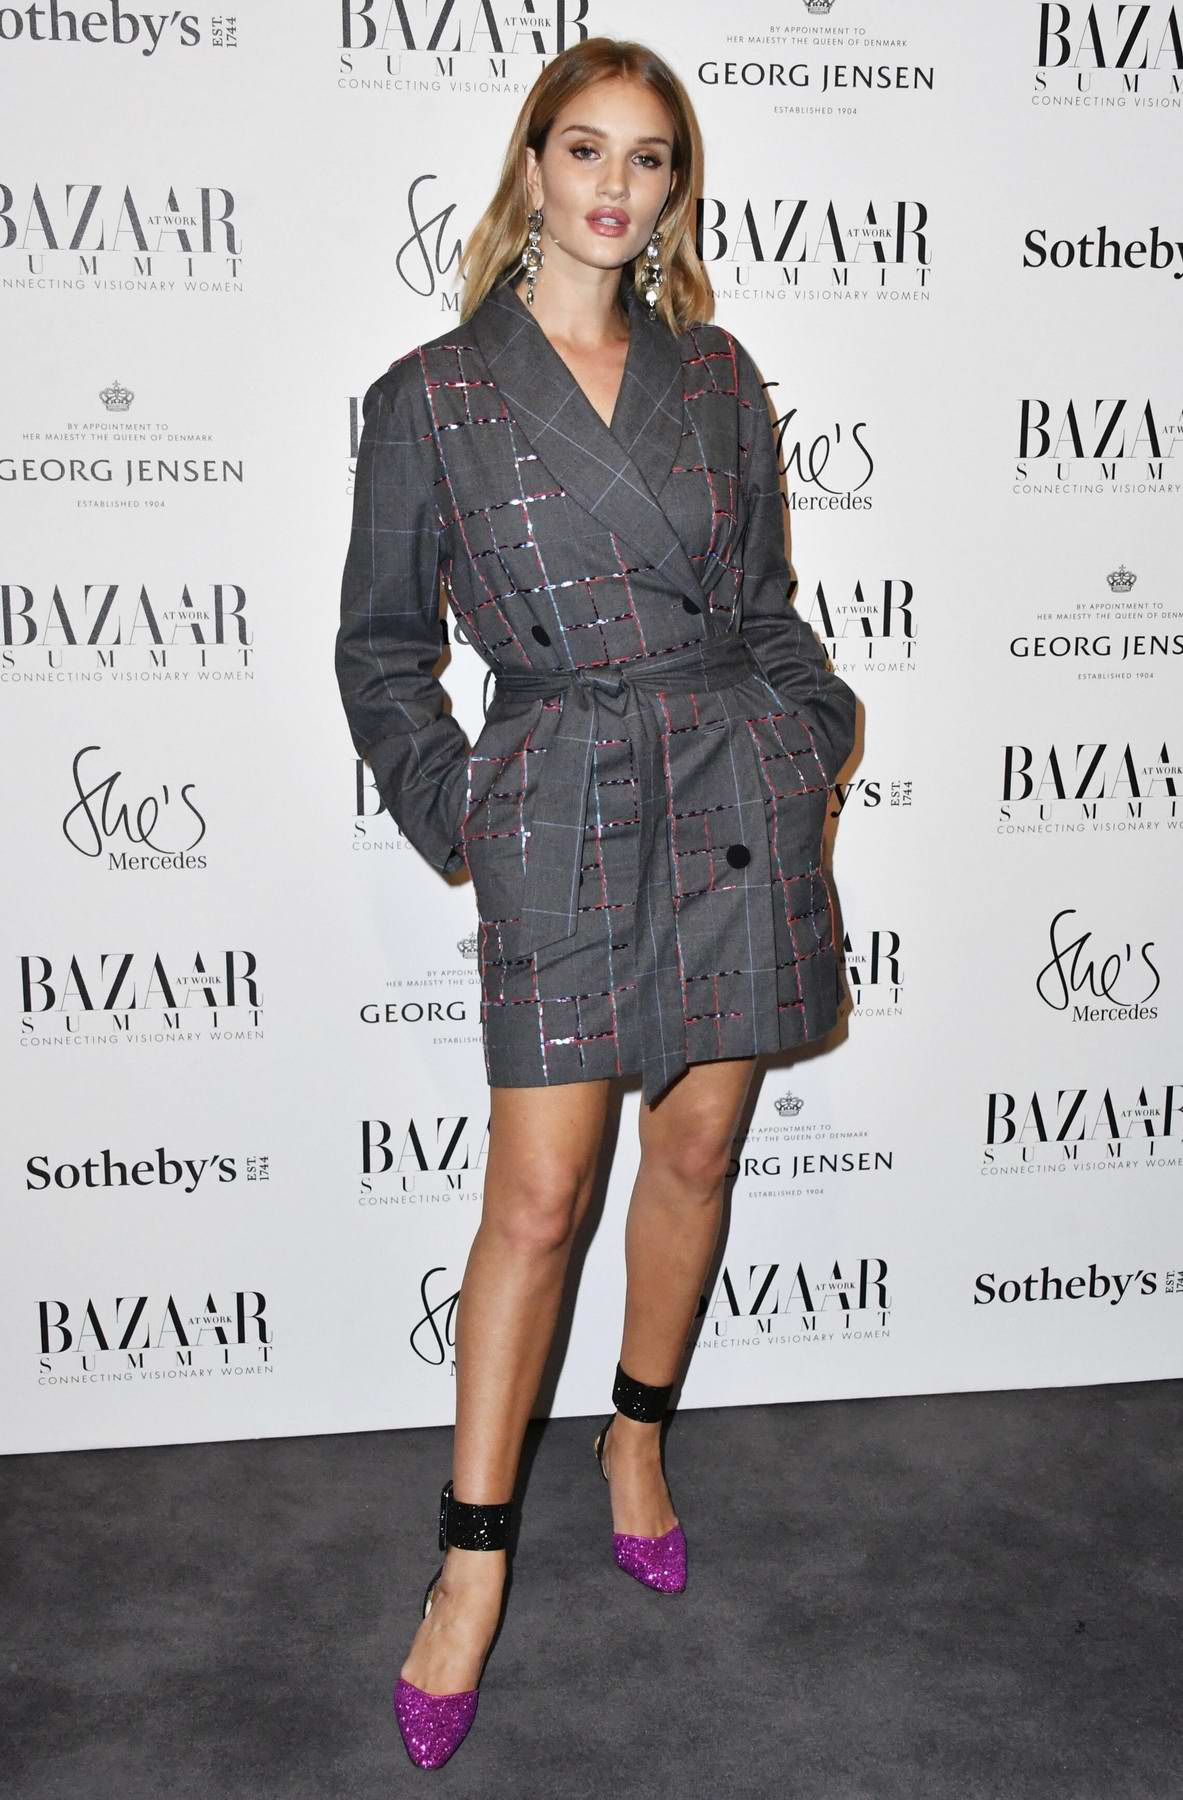 Rosie Huntington-Whiteley attends Bazaar at Work VIP cocktail party in London